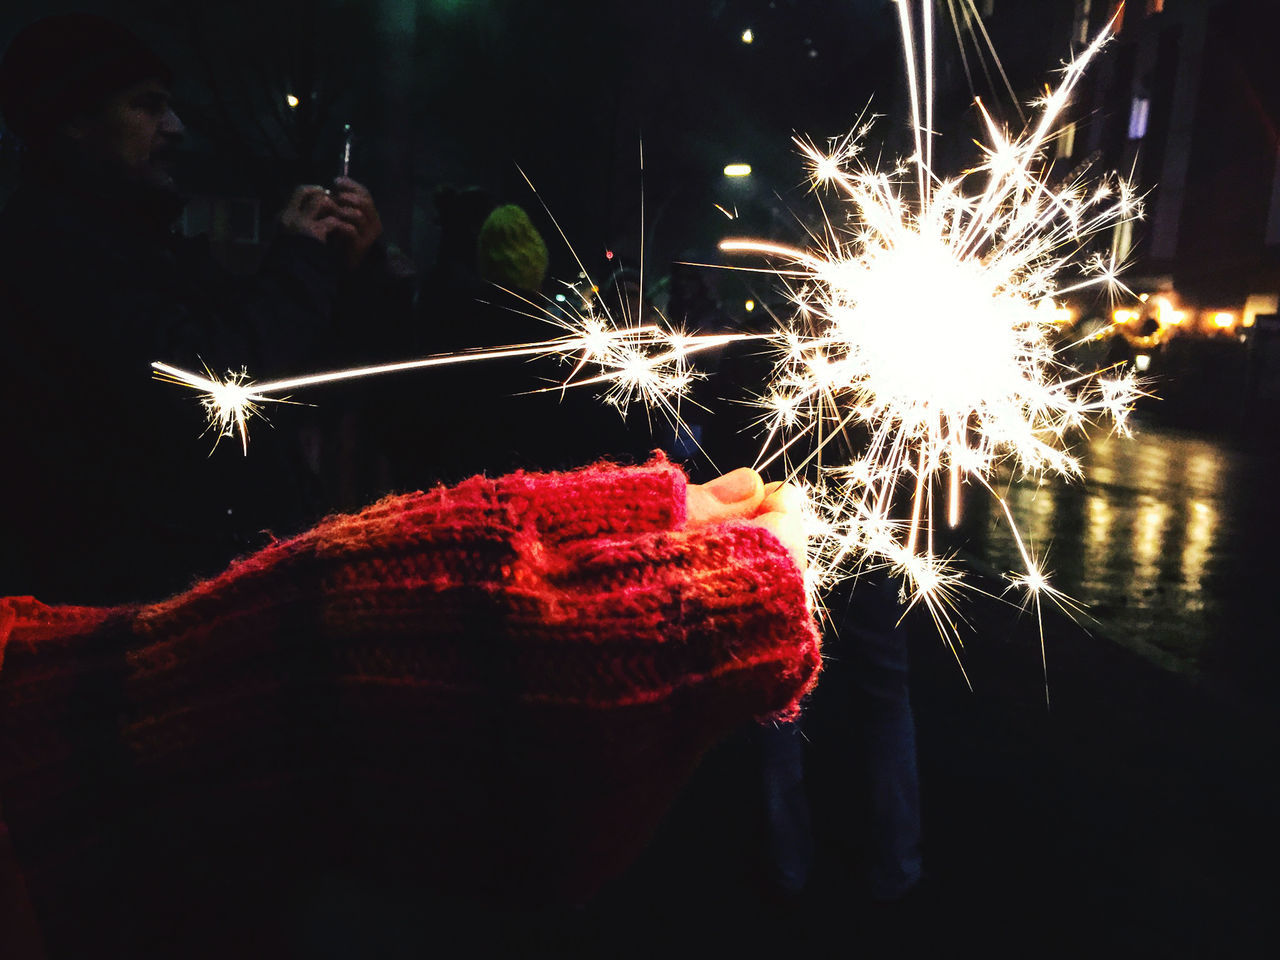 Cropped hand wearing sweater holding sparklers on street